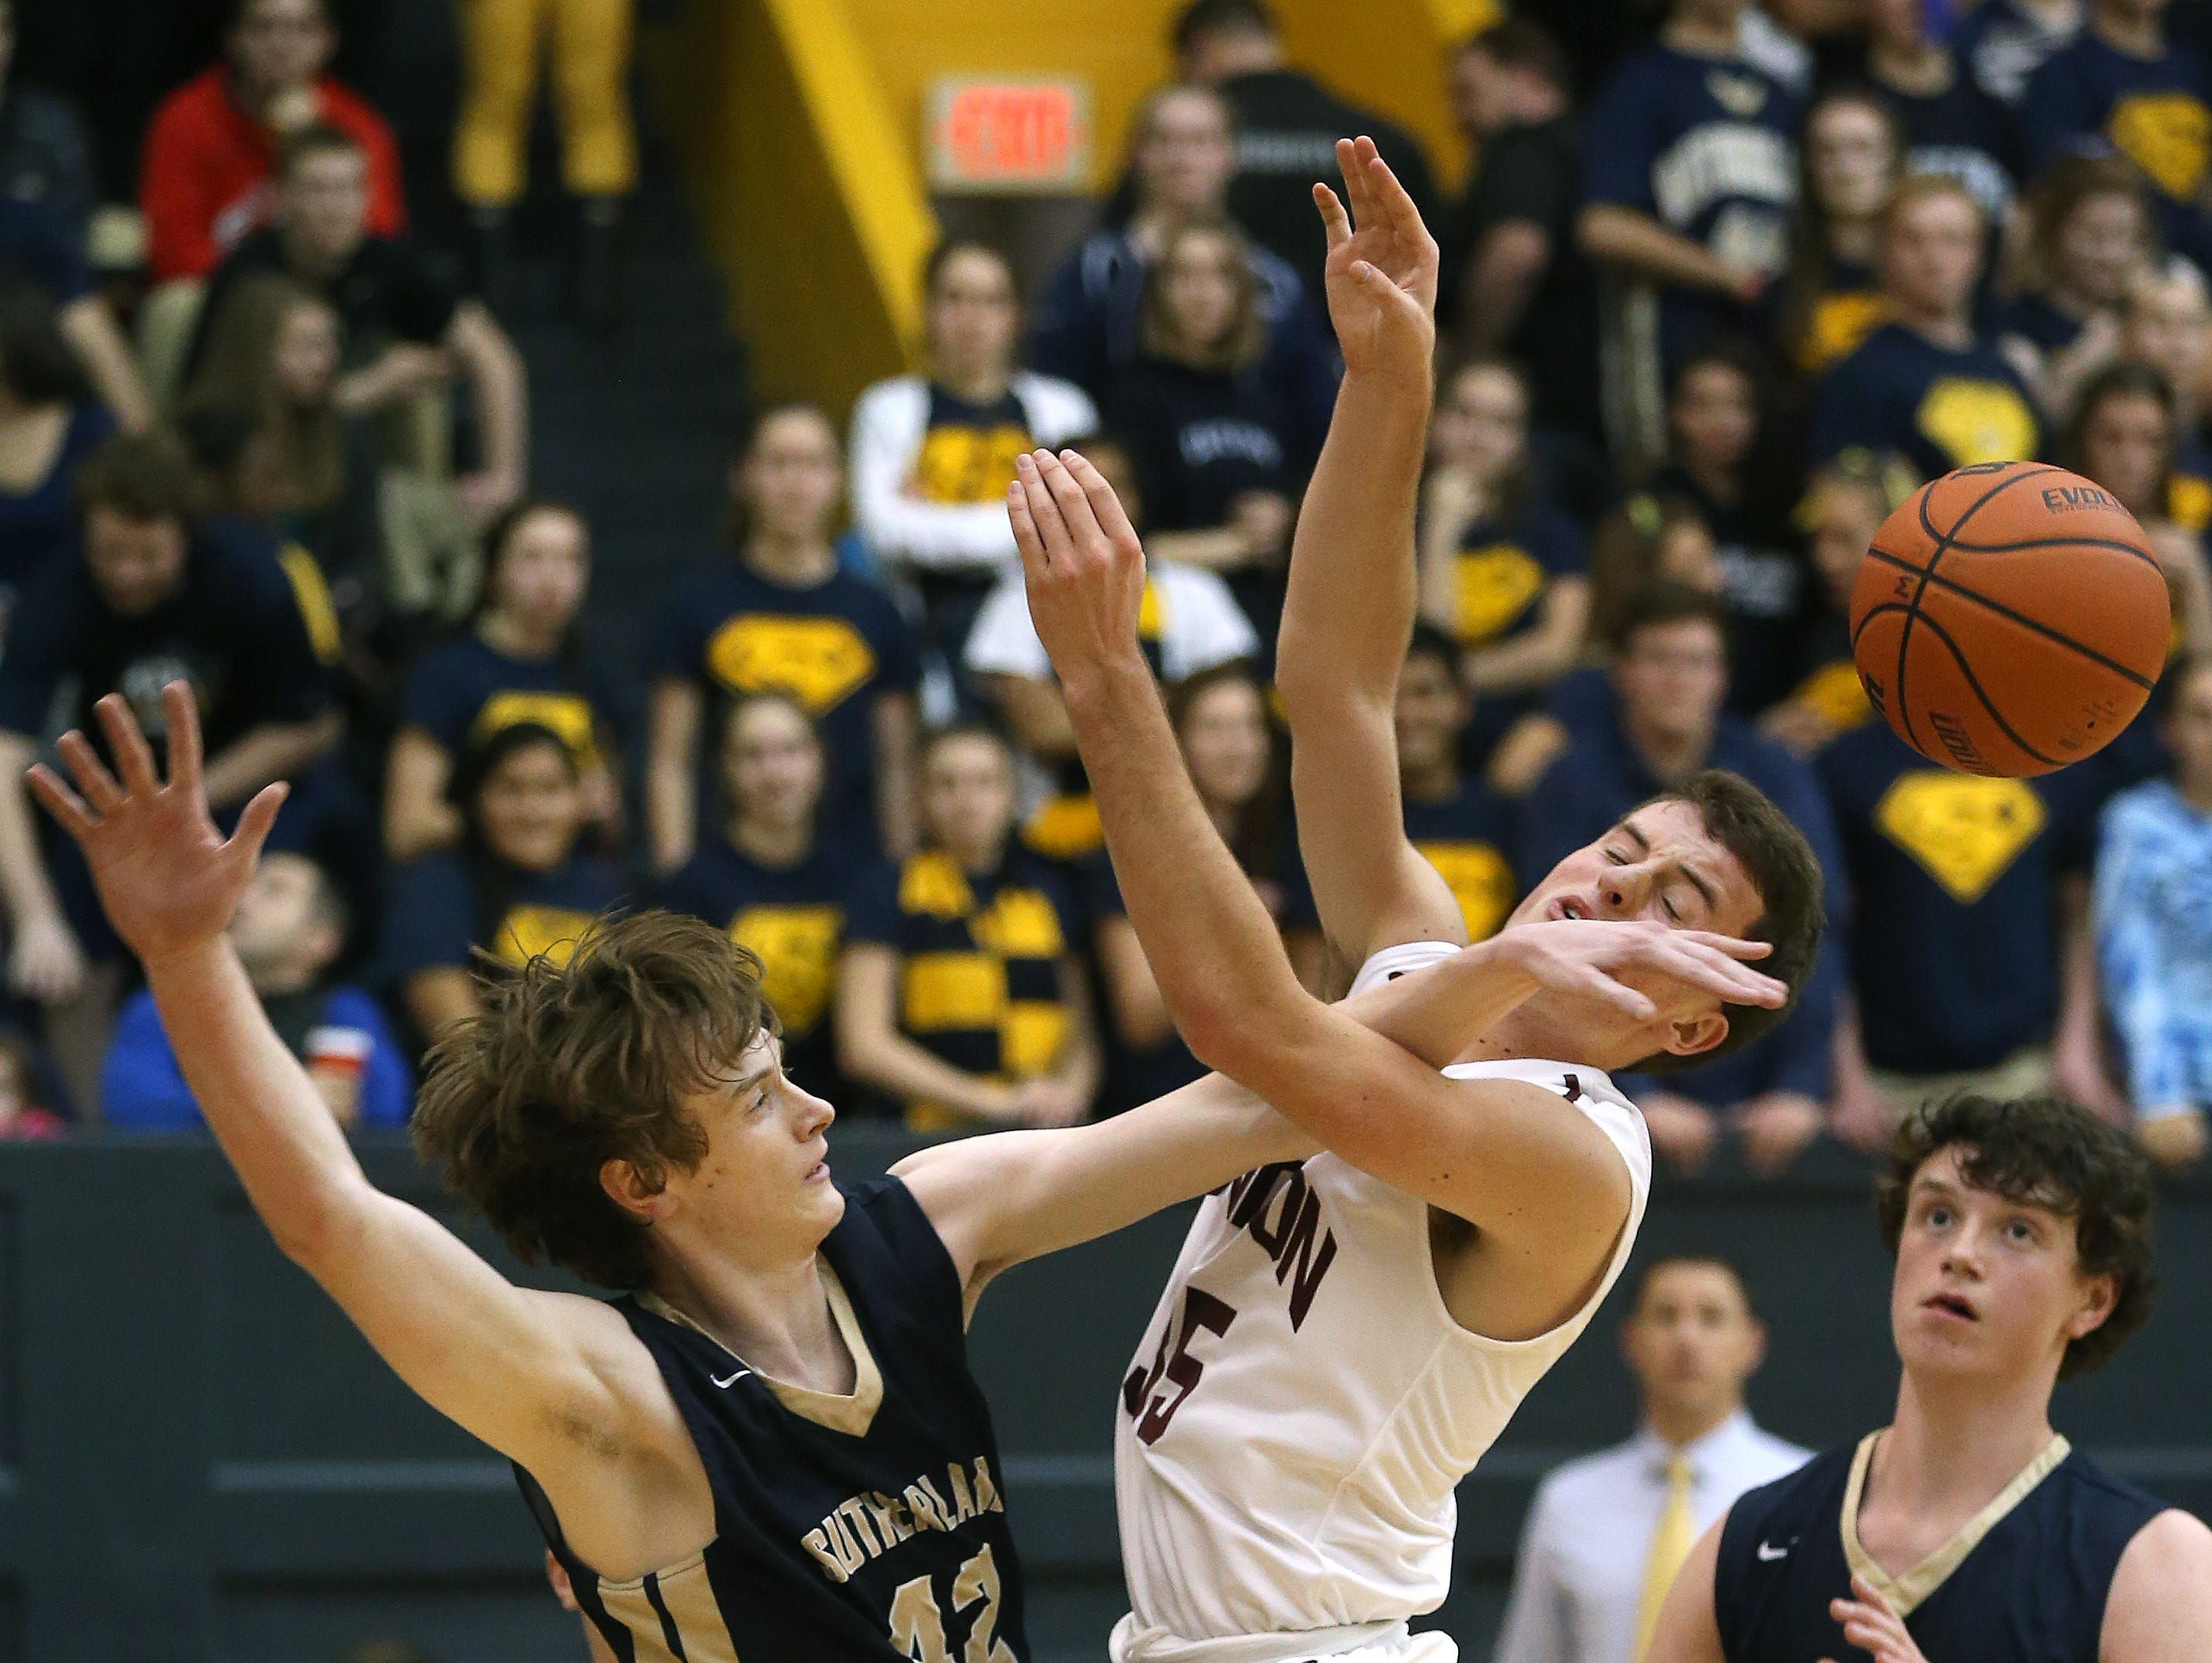 Mendon's Matt Powers gets a hand in the face by Sutherland's Mike Ryan while trying to get a shot off during the Rainbow Classic.